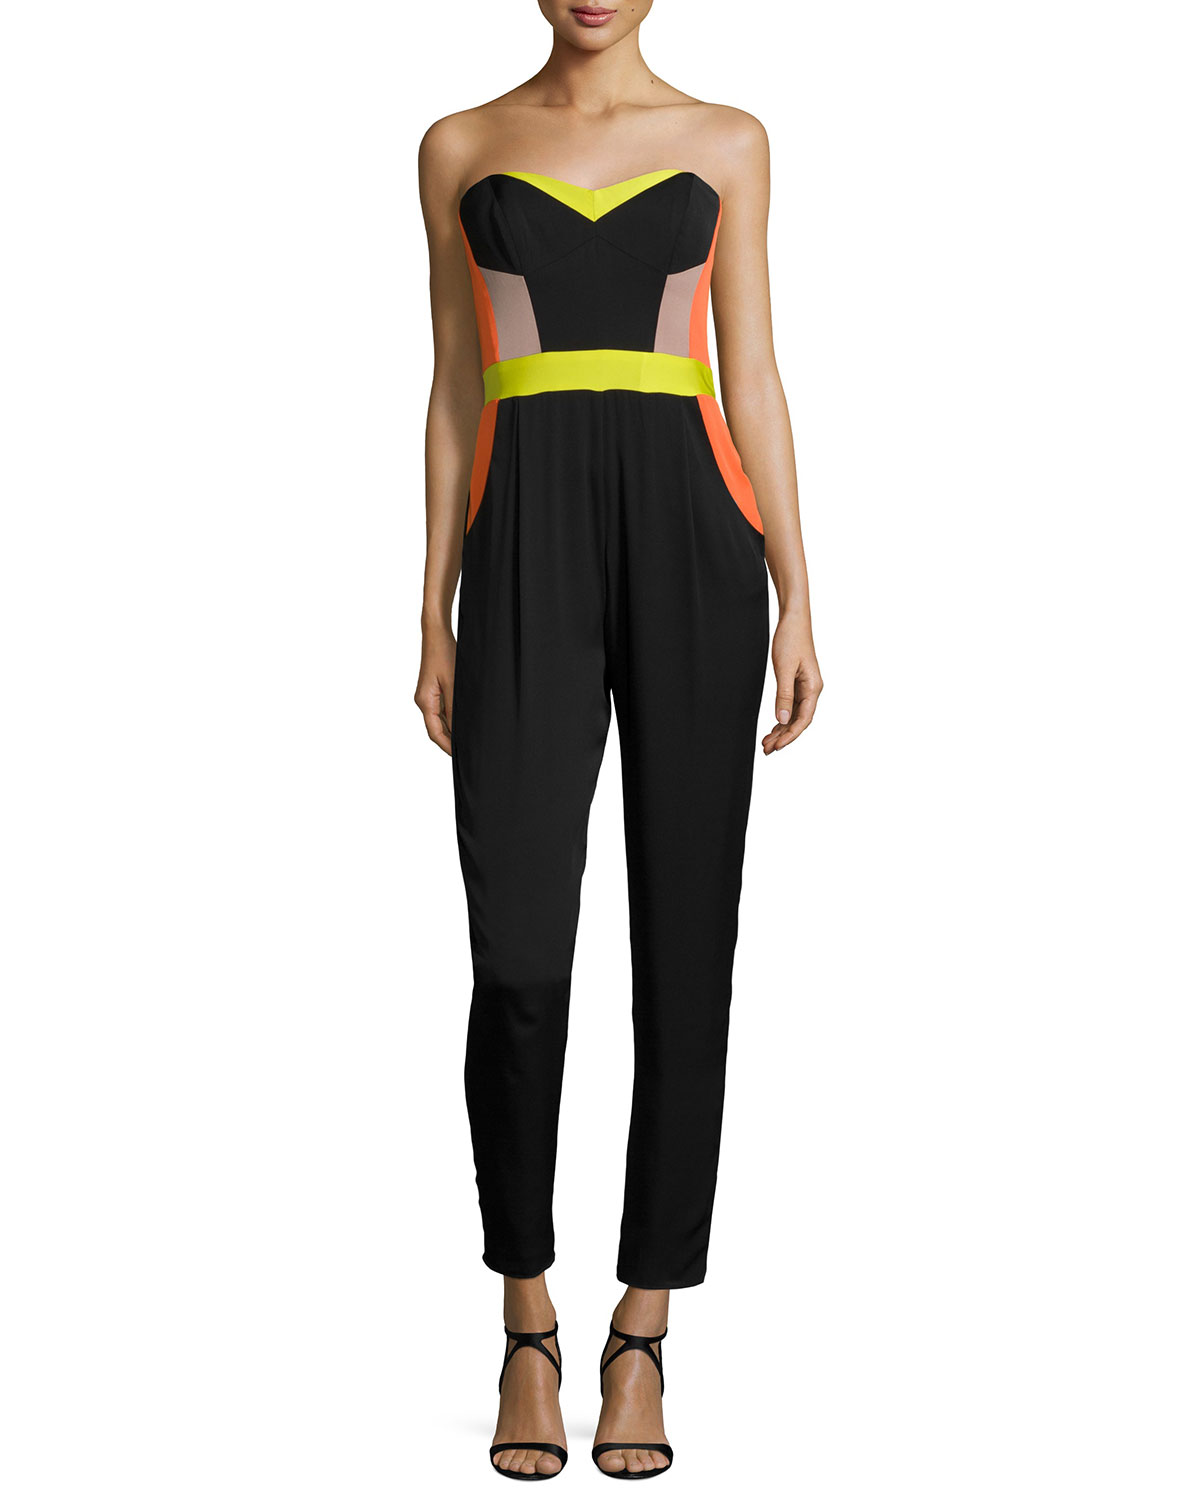 6483084f904b Milly Strapless Bustier Colorblock Jumpsuit